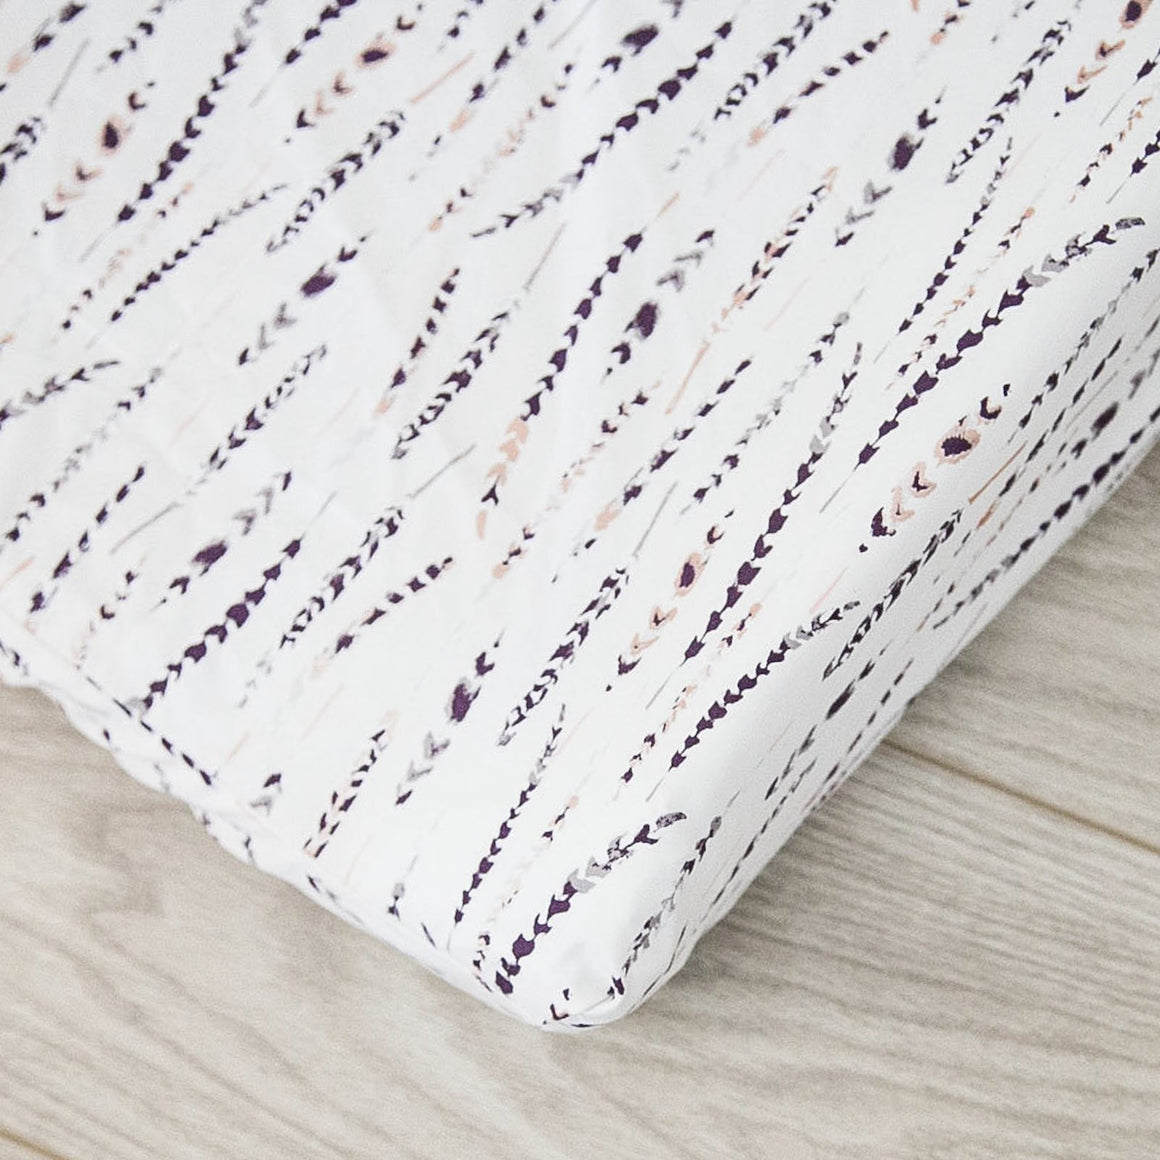 Changing Pad Cover - Metallic Feathers